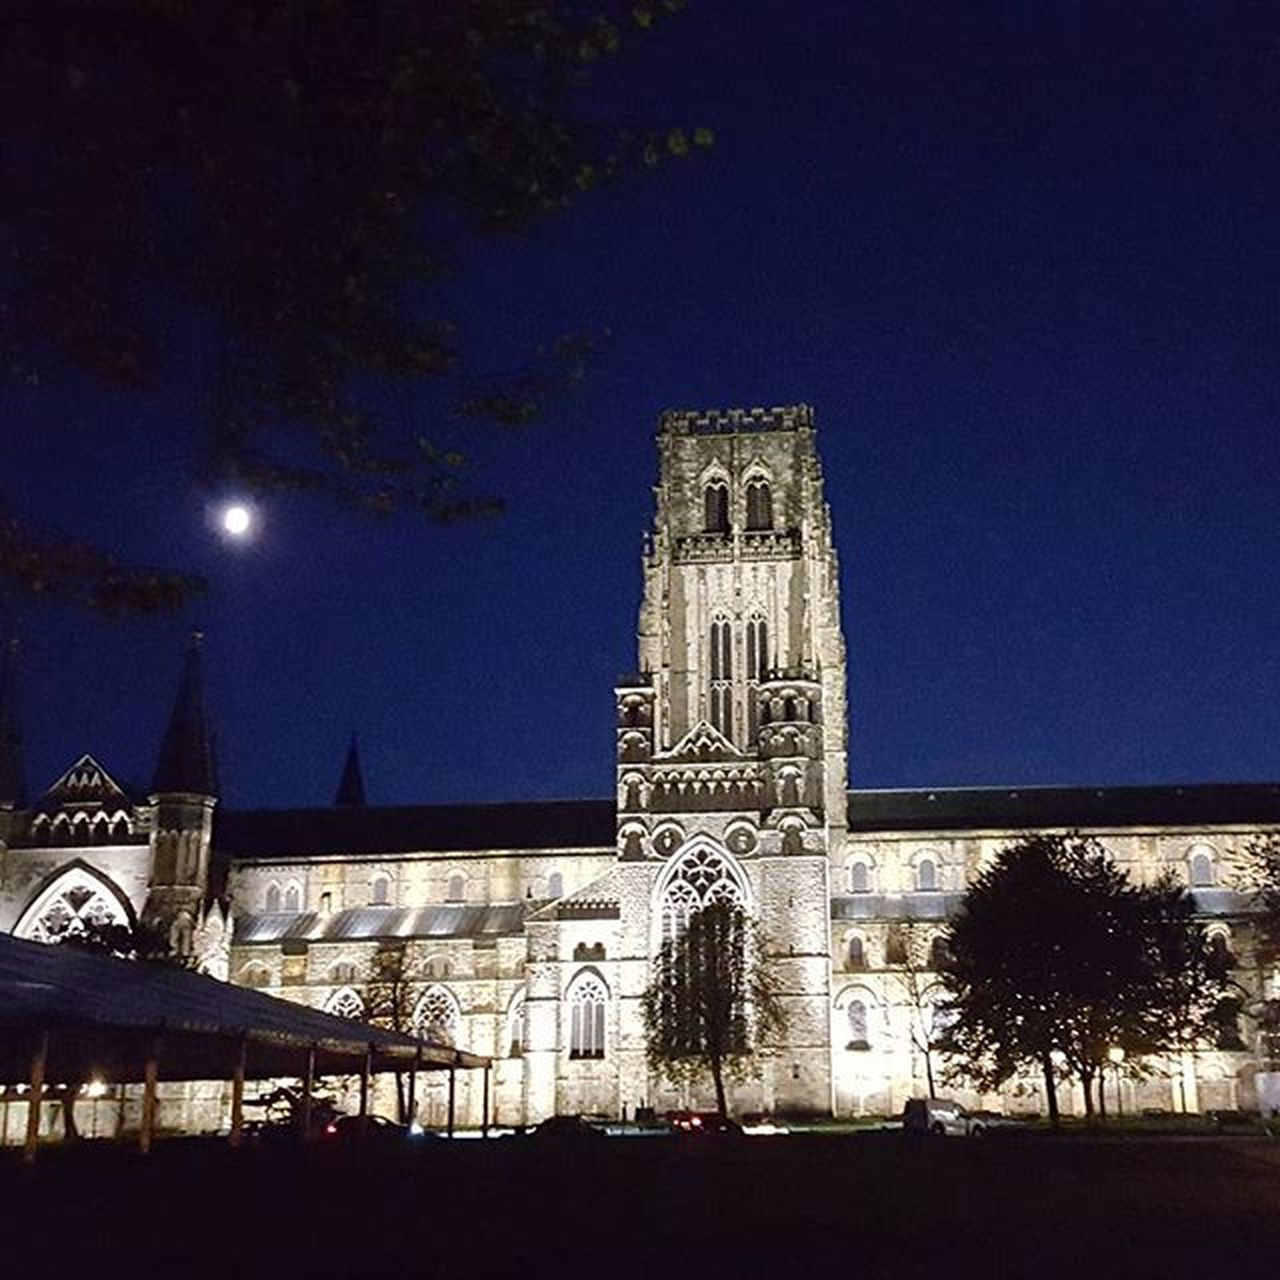 Durham Cathedral at night Home DurhamCathedral Nofilter Moon nightsky